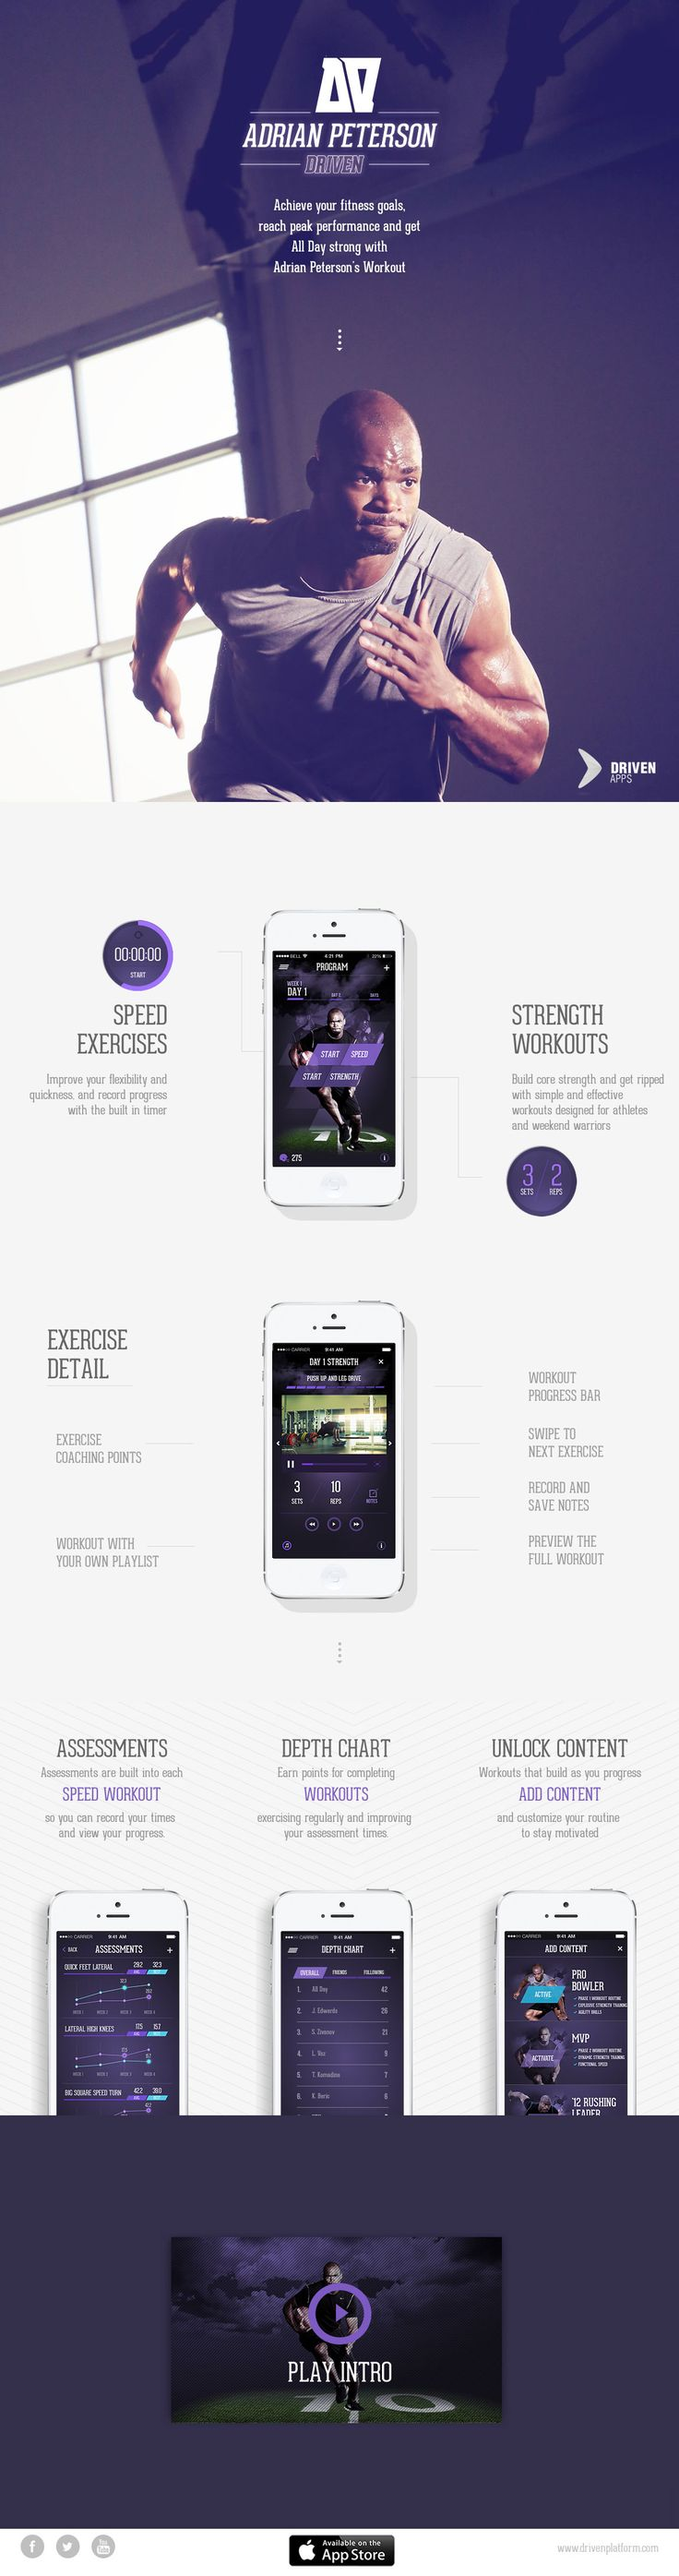 NFL's Adrian Peterson has launched a new fitness iPhone App in a neat one pager. I really think the site would be so much more stylish without the white page border but it deserves a feature with the slick manner it reveals the screenshots as you scroll.